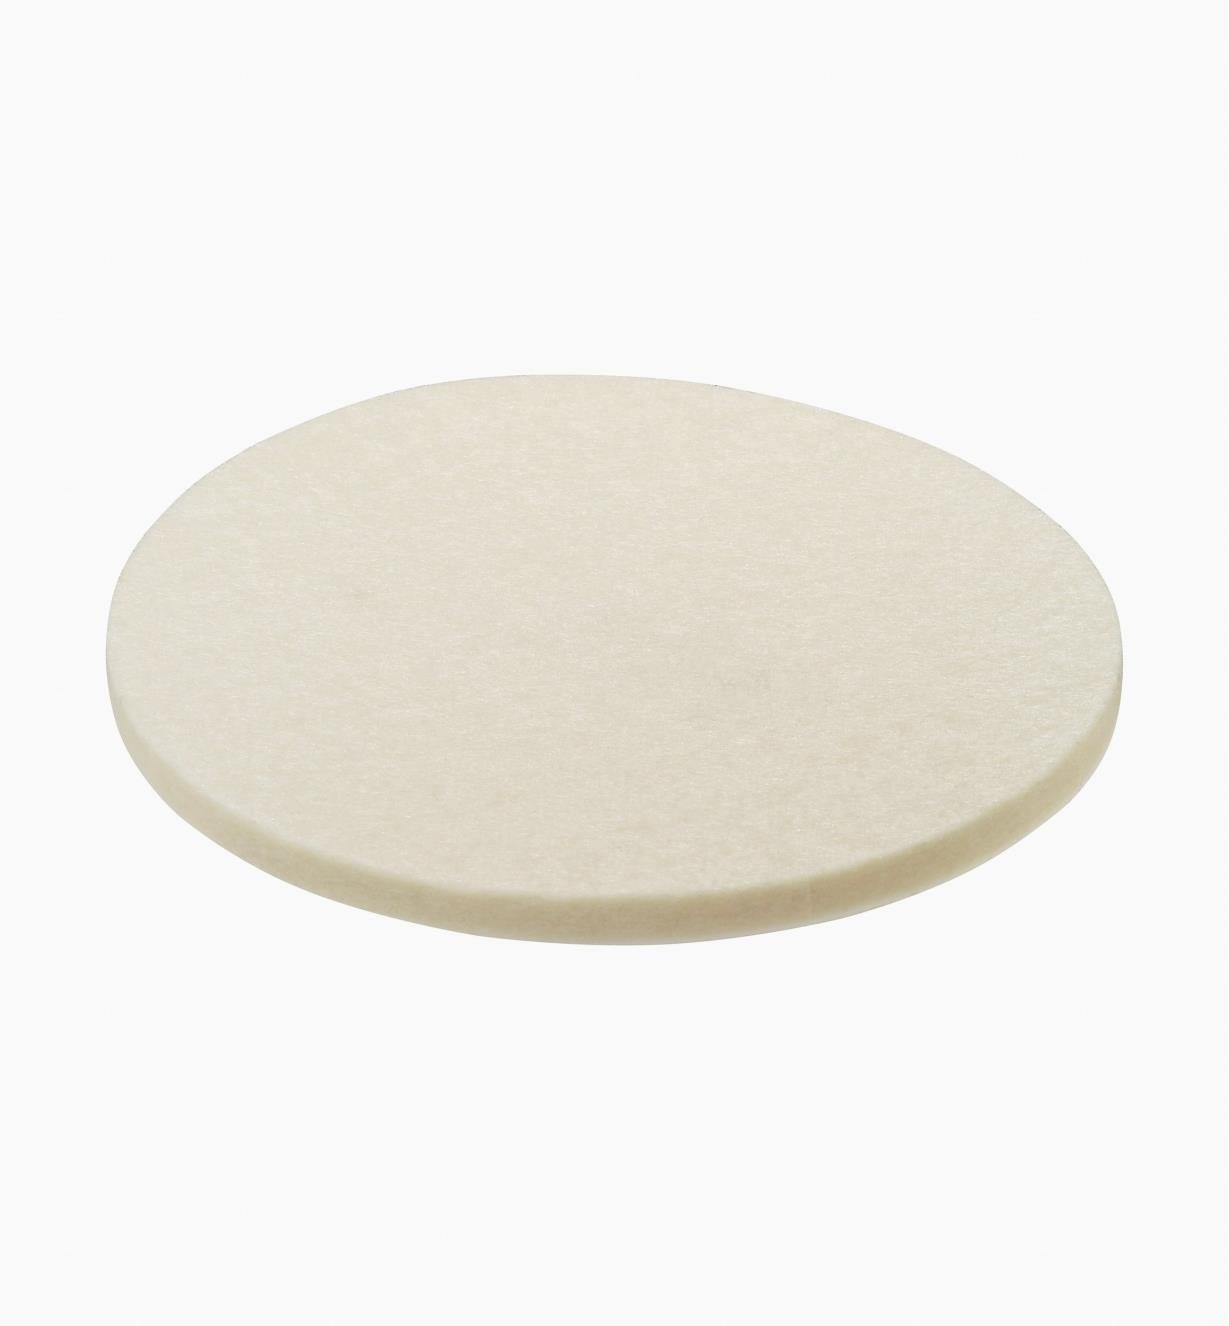 ZA493077 - Soft Polishing Felt